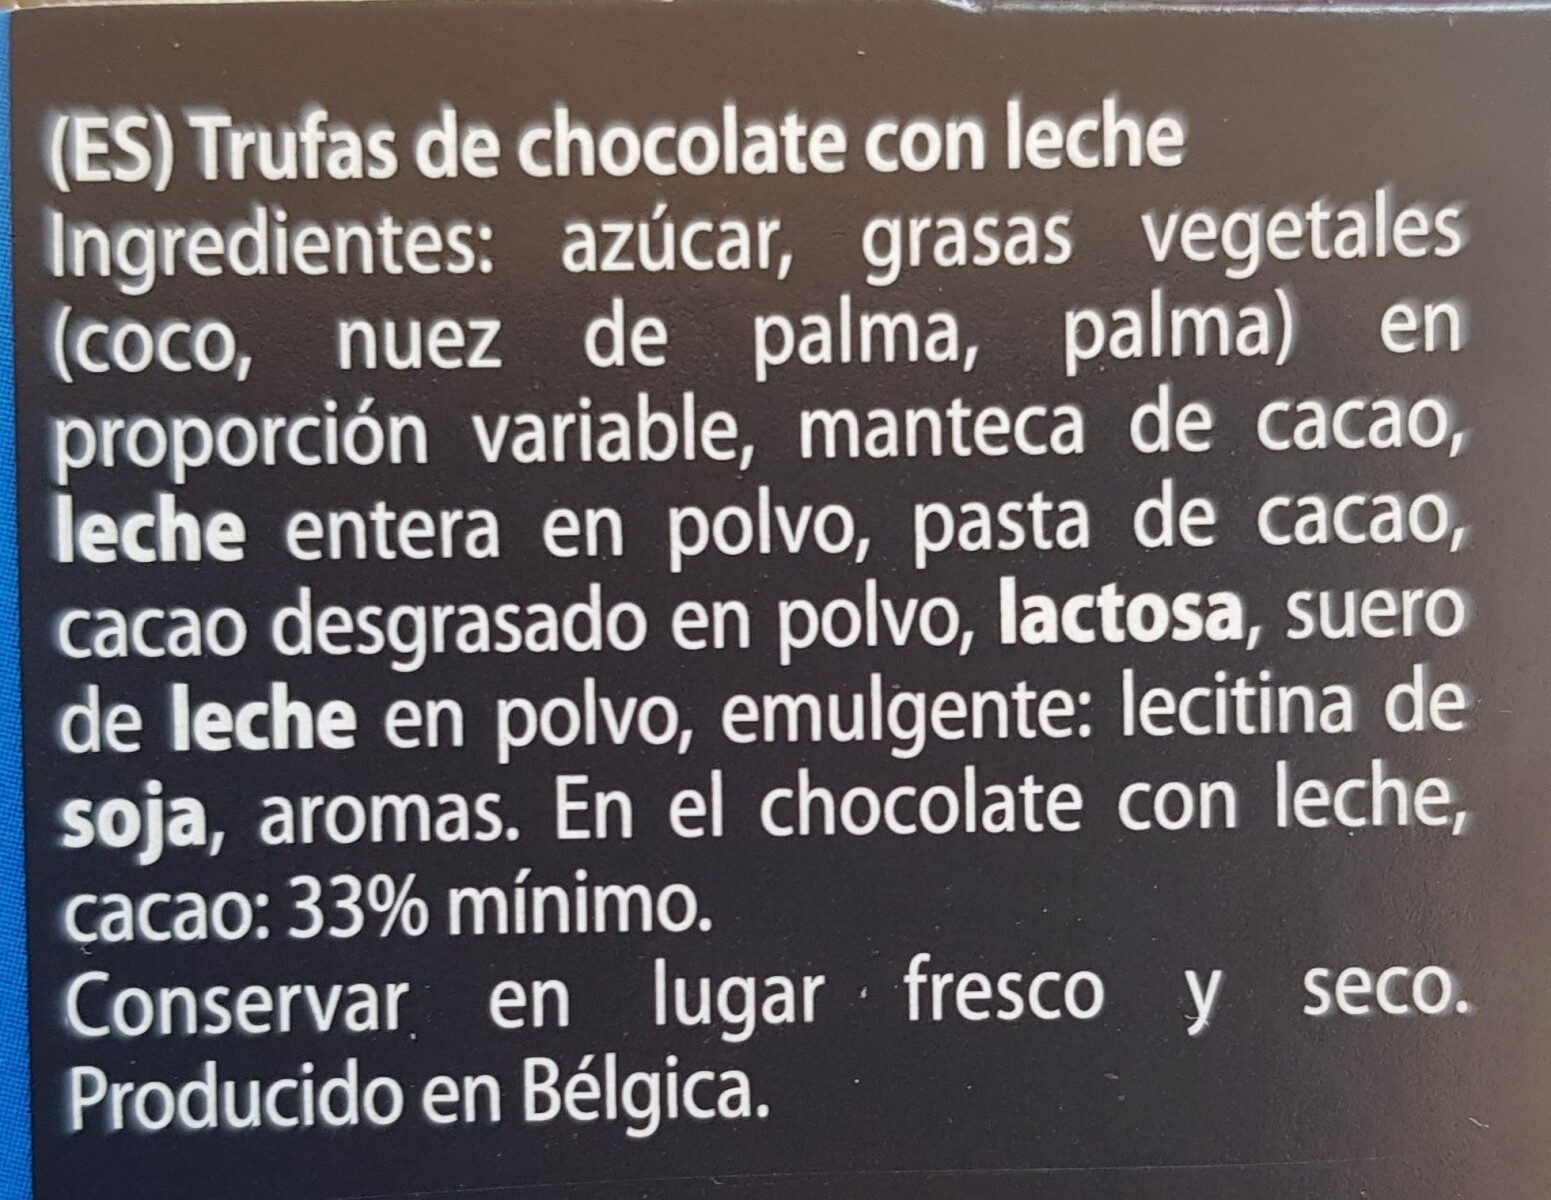 Trufas chocolate con leche - Ingredients